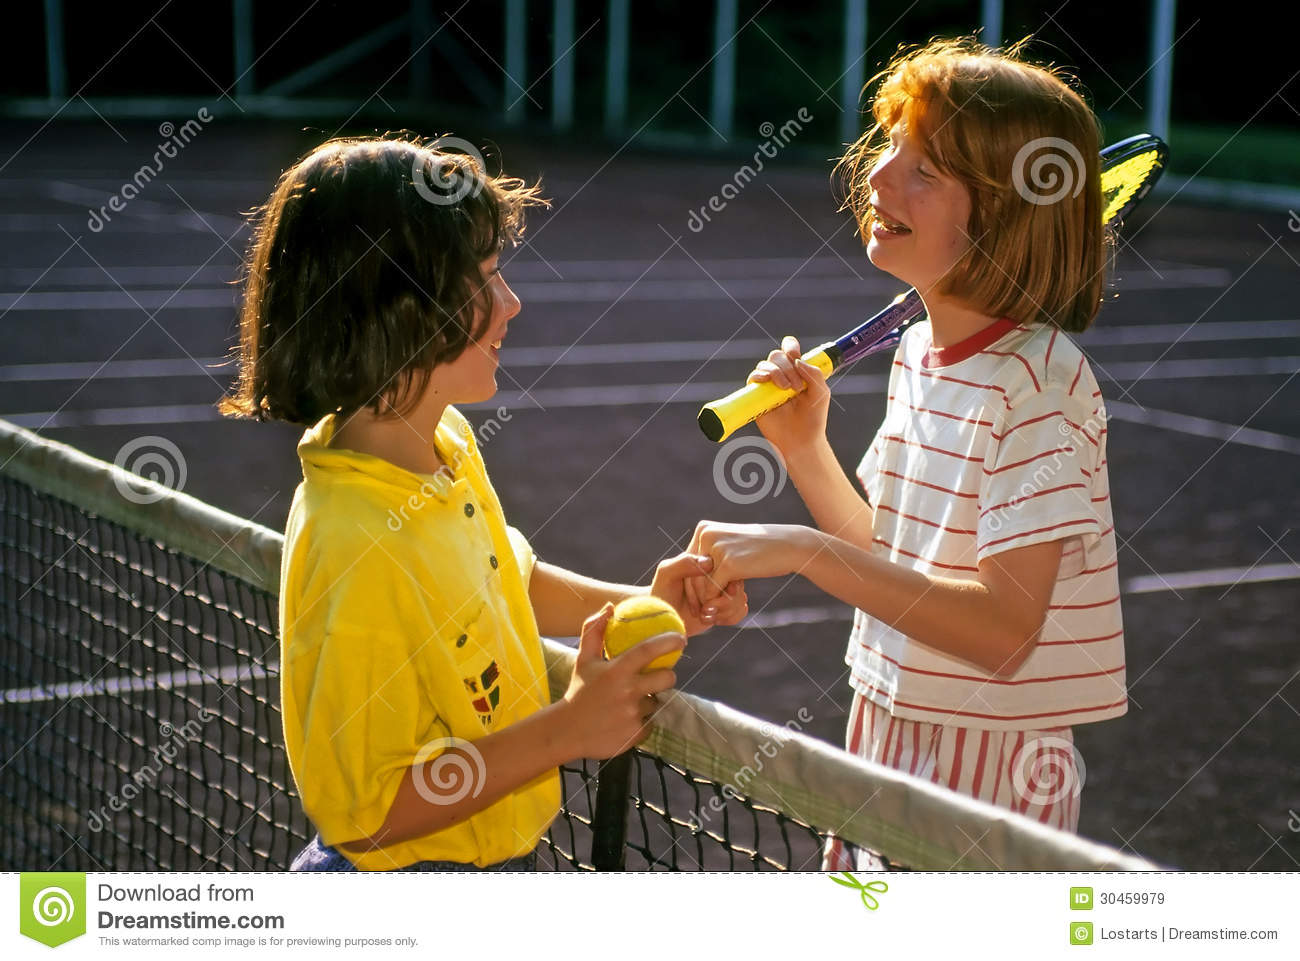 Two Girls At Summer Camp Demonstrate Good Sportsmanship After Their